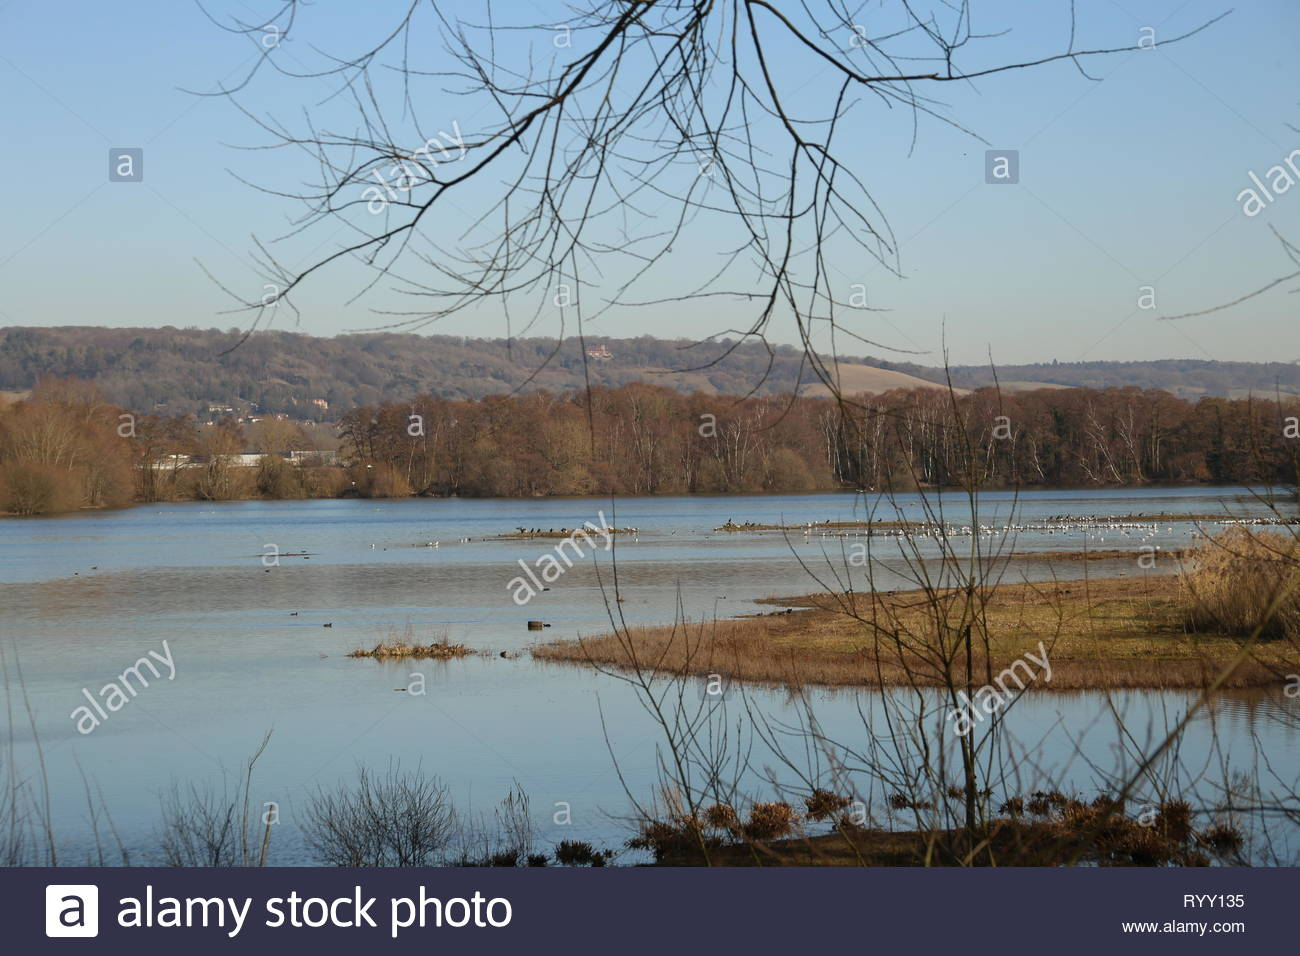 Wetlands in danger - human activity has significantly affected wetland habitats, continuing to cause loss of wetlands & a decline in wildlife species. - Stock Image